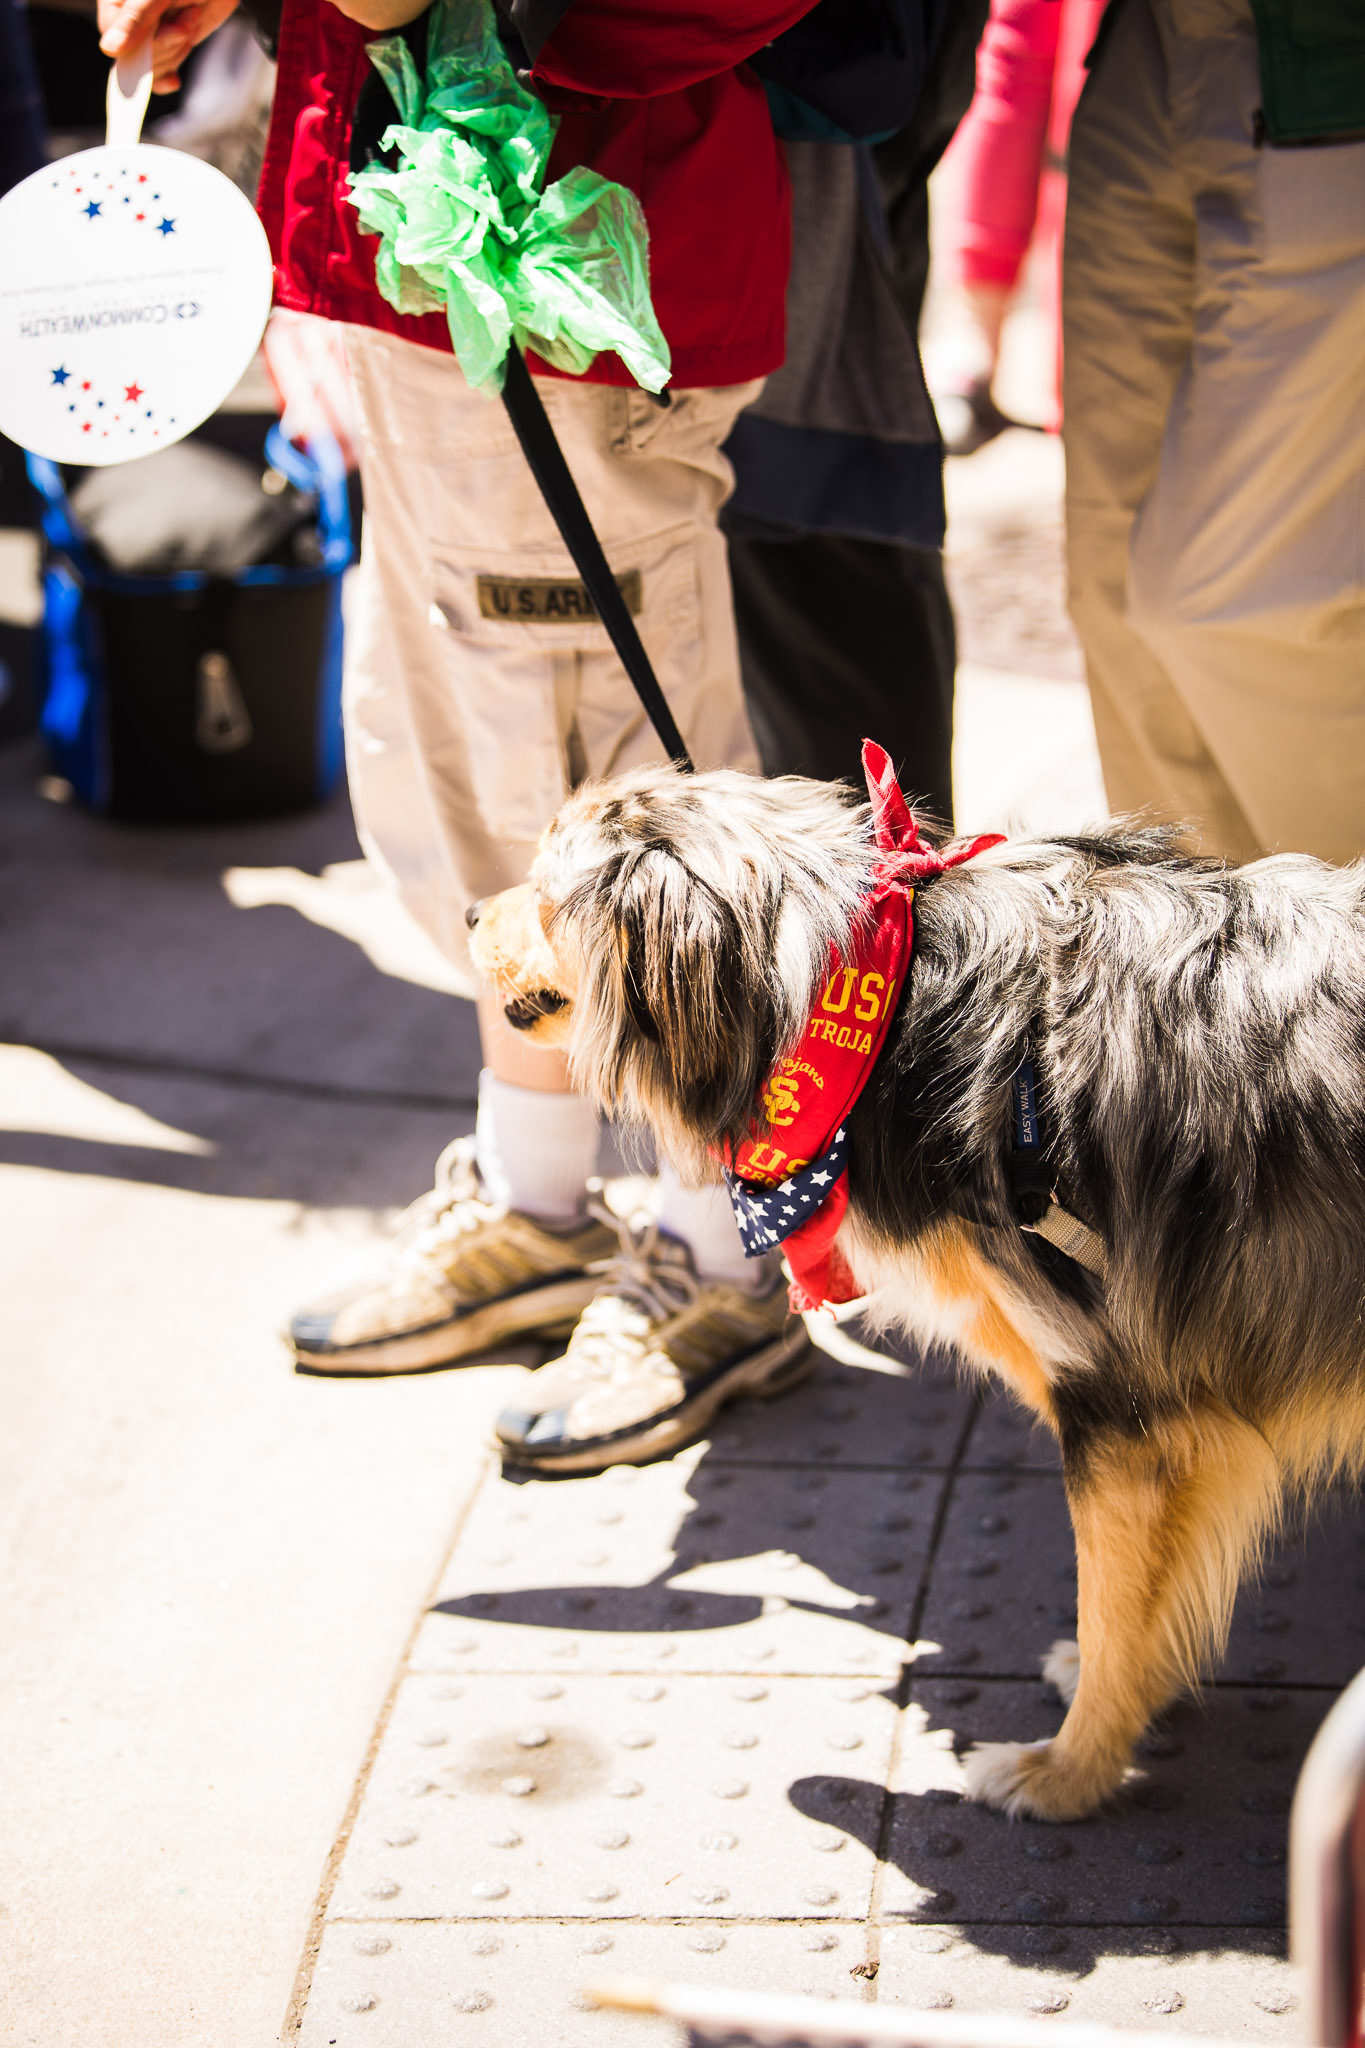 Archer_Inspired_Photography_Morgan_Hill_California_4th_of_july_parade-167.jpg